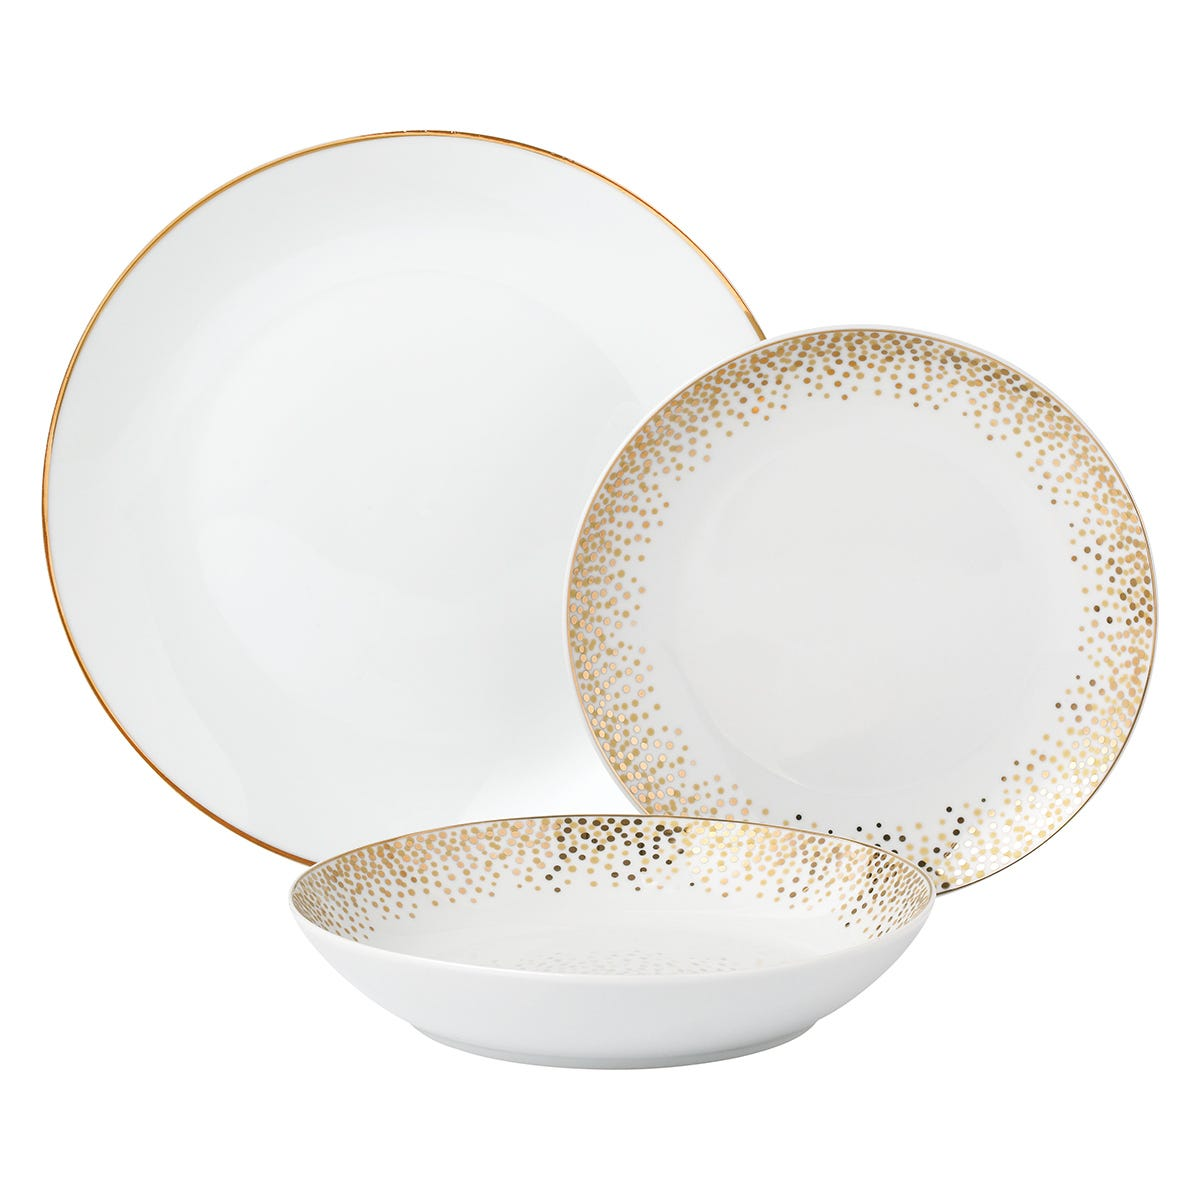 12-Piece Celebration Dinner Set - Gold